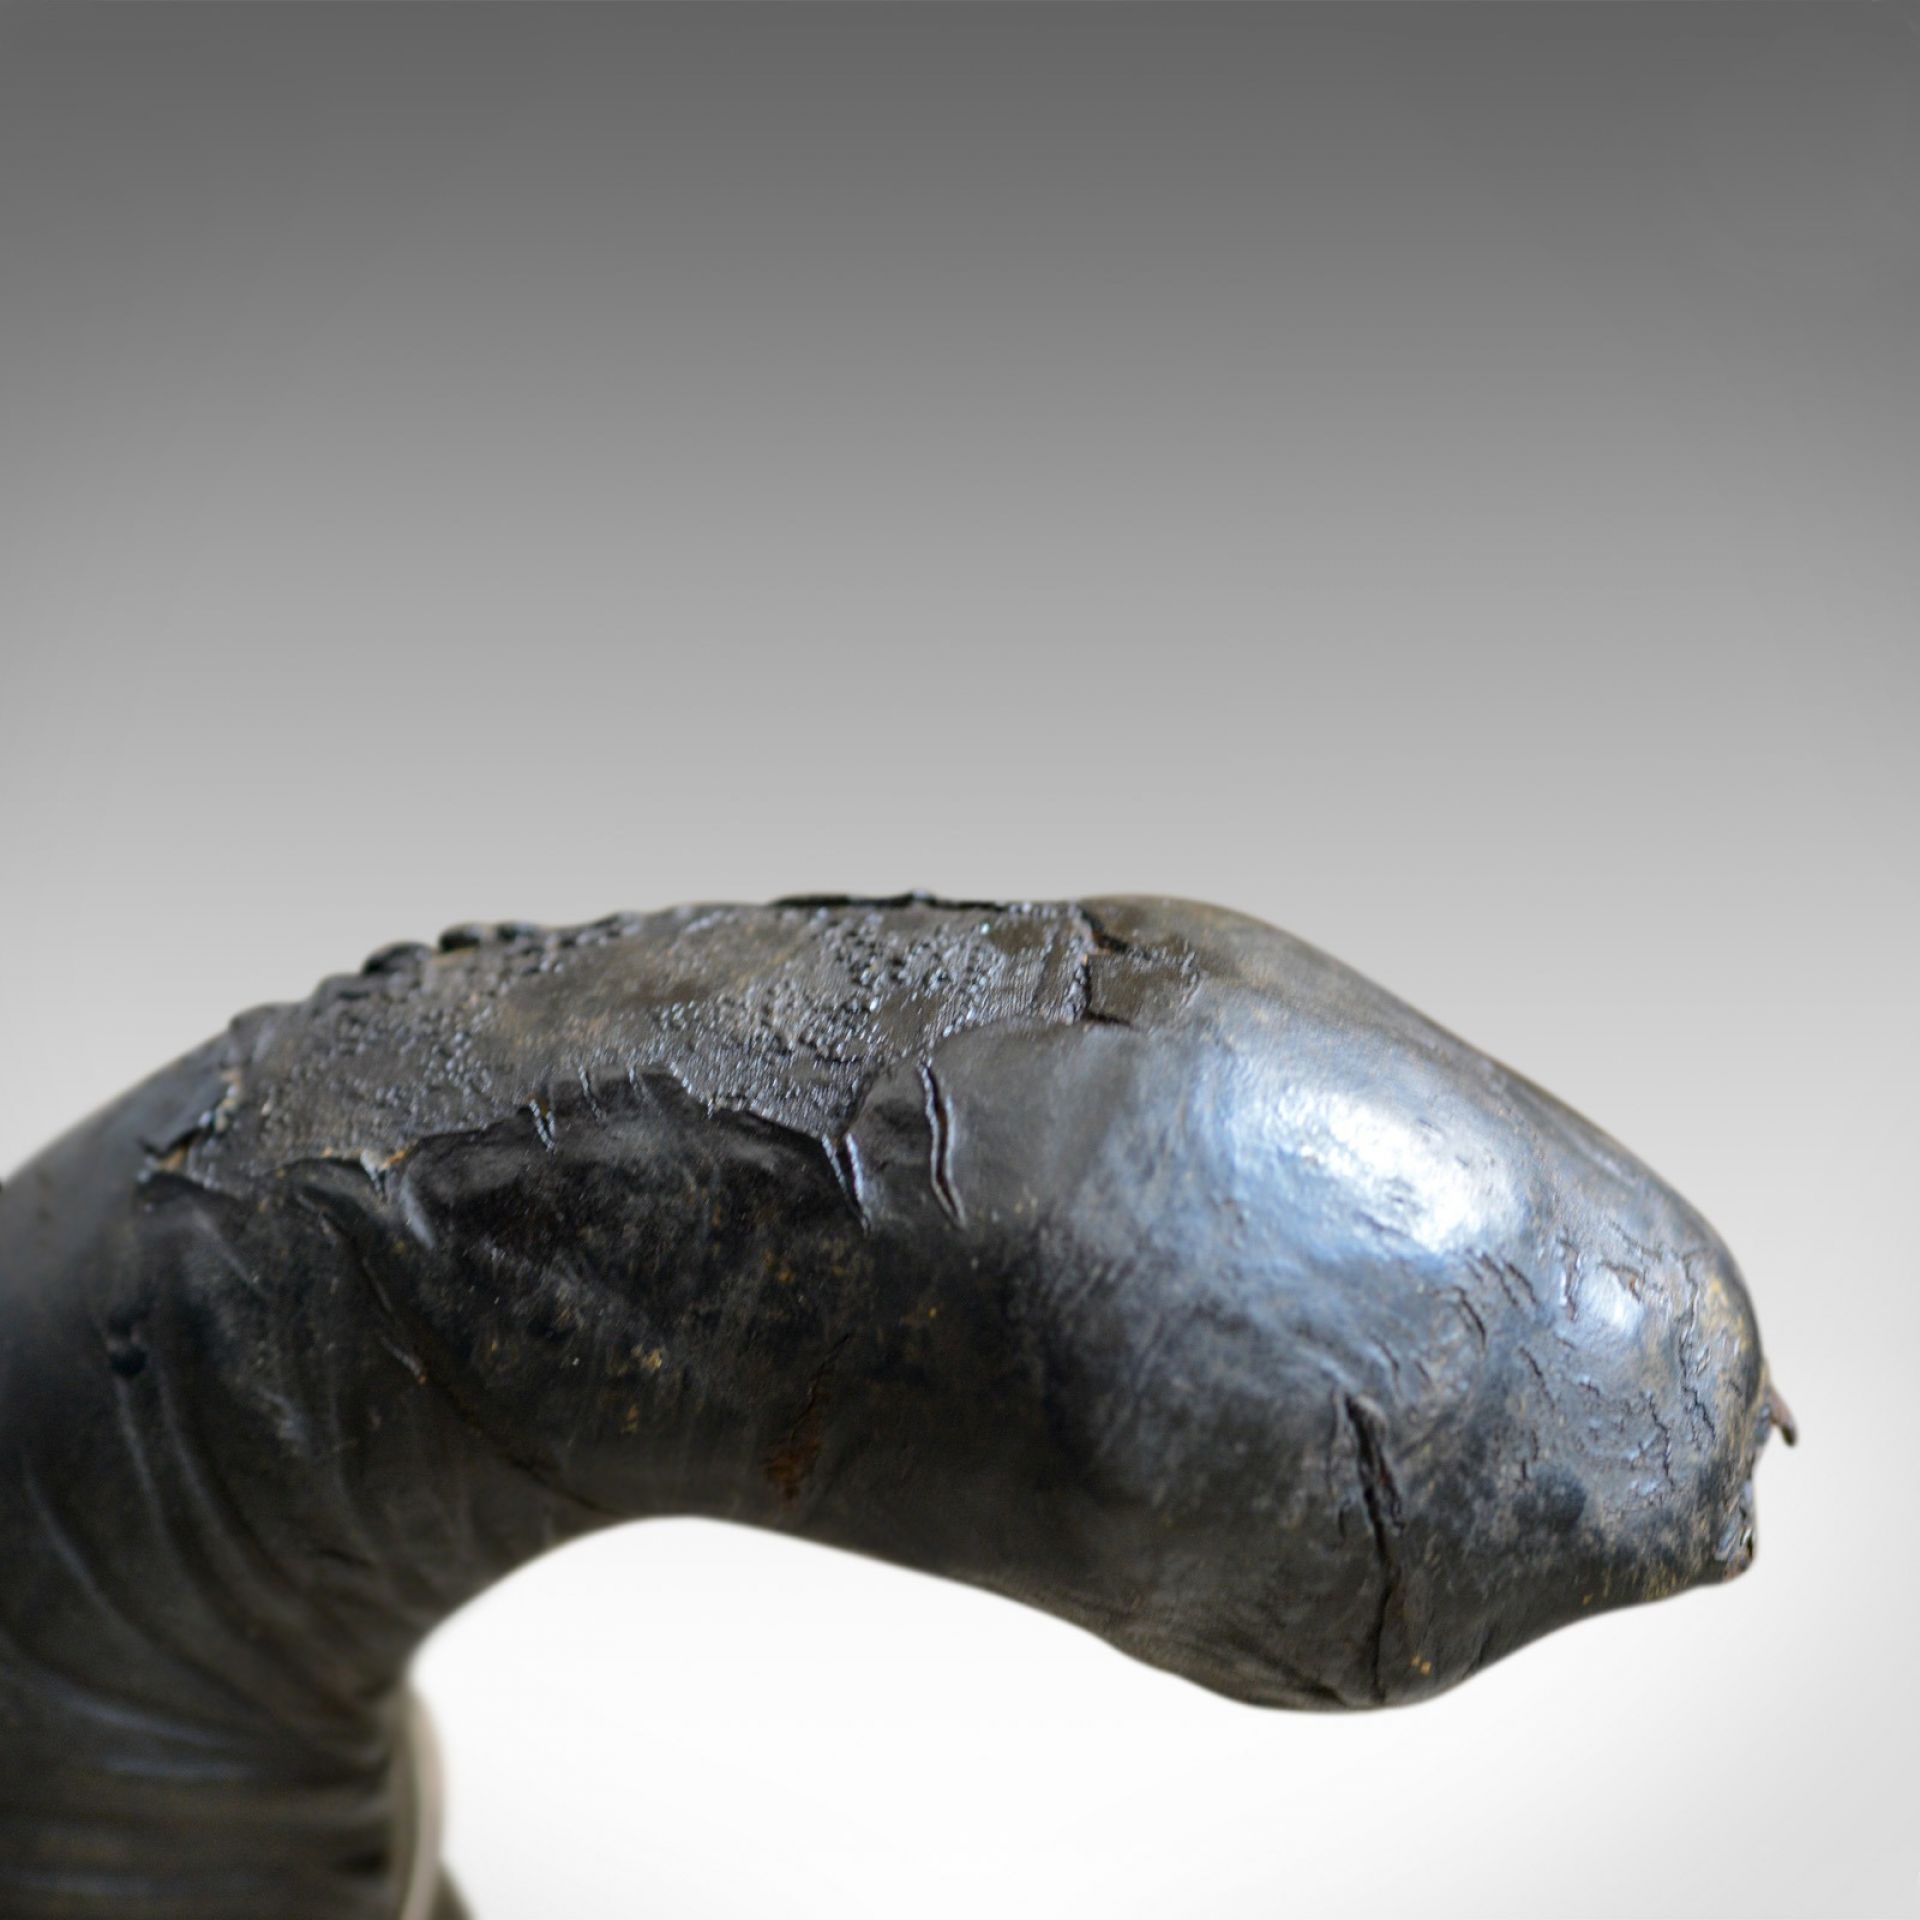 Large Vintage Leather Elephant Sculpture, 3 Foot Tall Model, Mid 20th Century